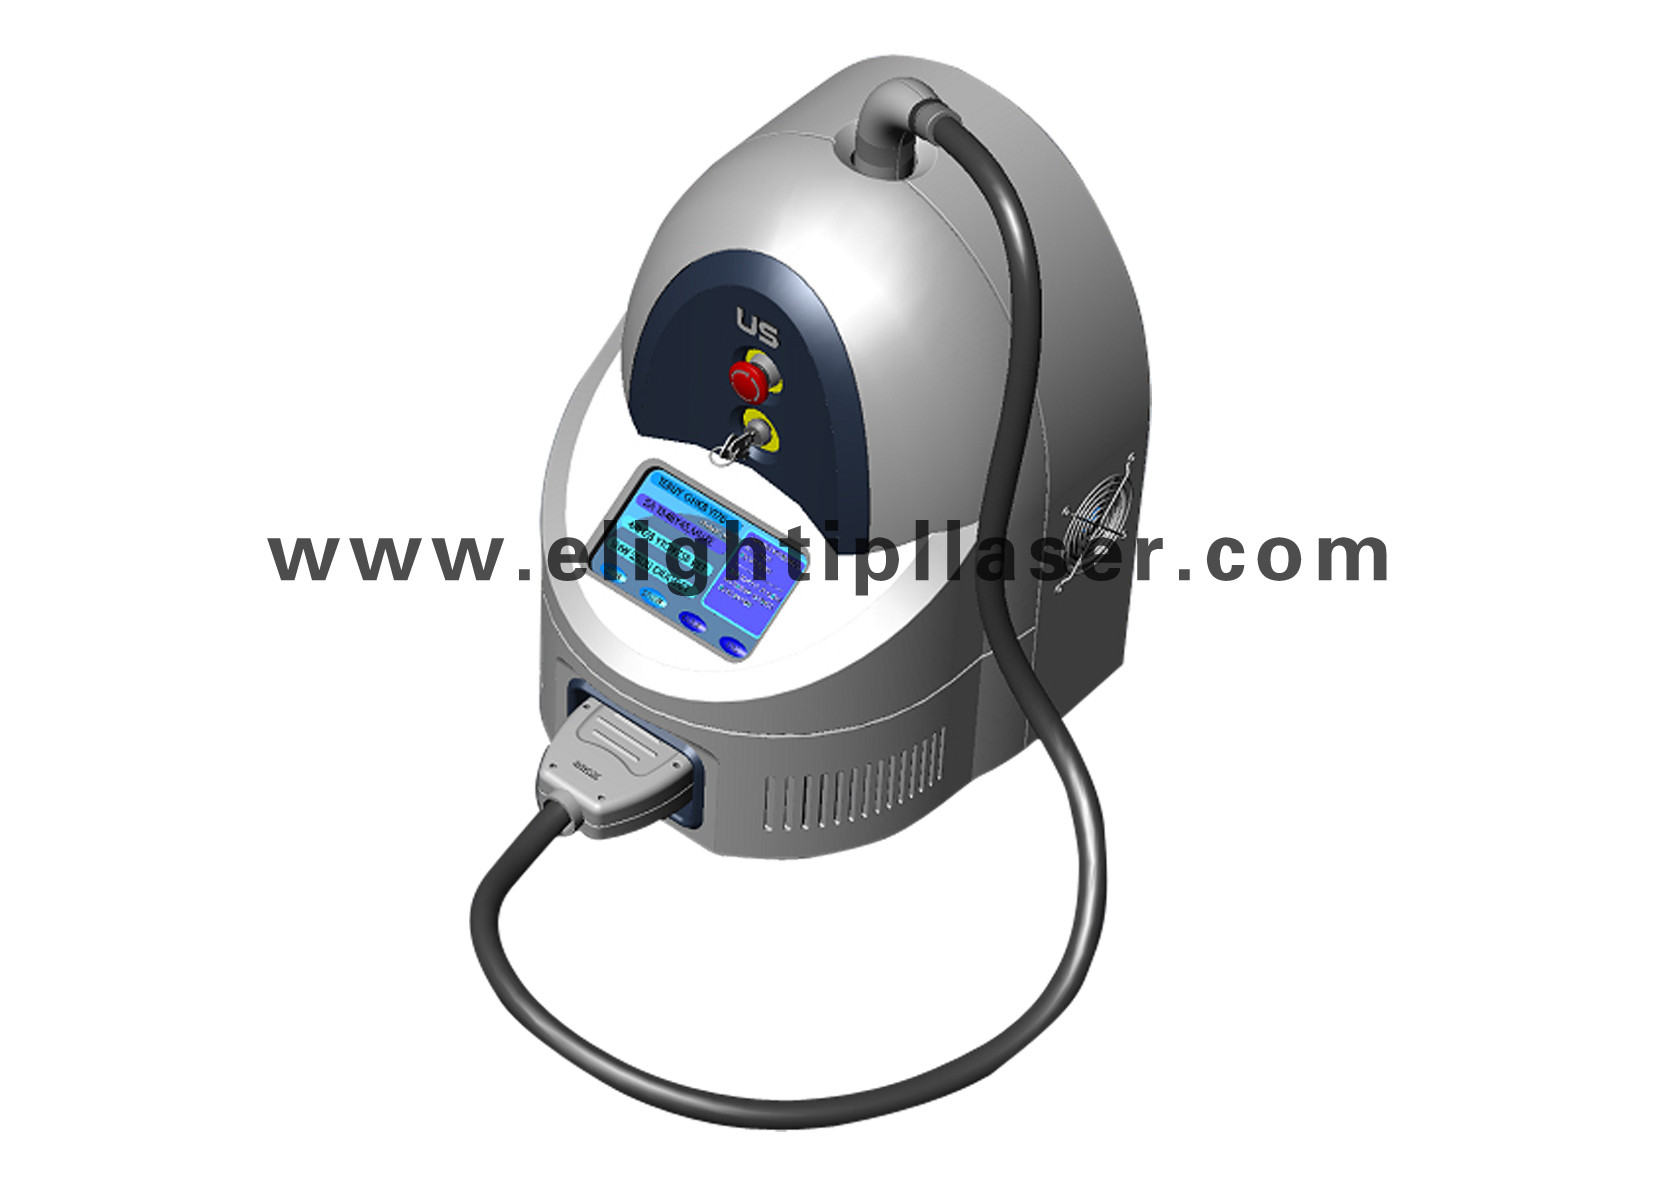 Whelk / Scars Painless RF Cavitation Slimming Machine Lose Weight , Salon Beauty Equipment